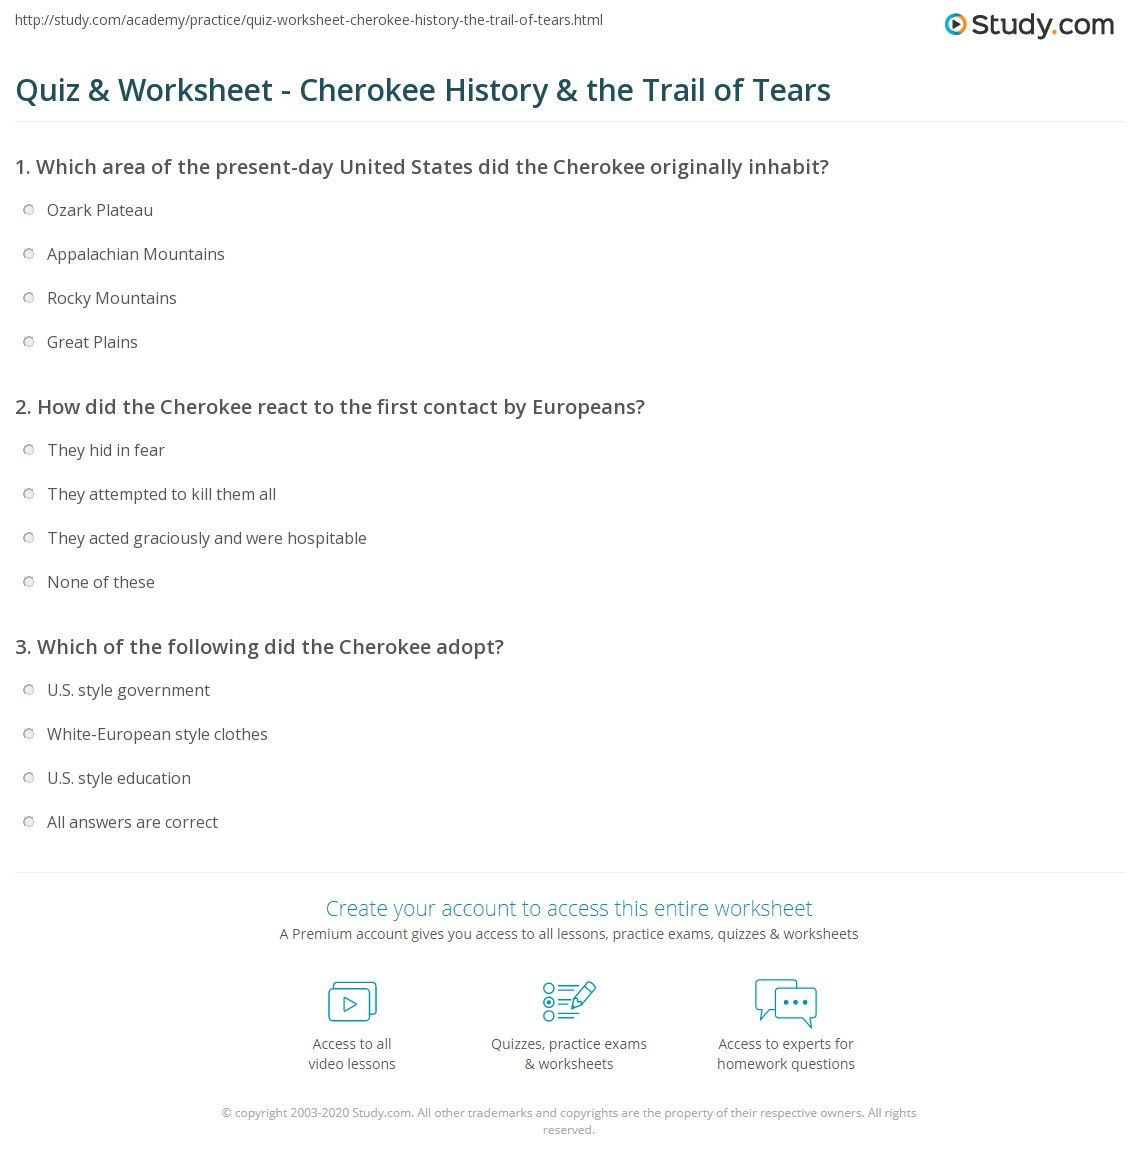 Proatmealus  Remarkable Quiz Amp Worksheet  Cherokee History Amp The Trail Of Tears  Studycom With Inspiring Print The Cherokee Amp The Trail Of Tears History Timeline Amp Summary Worksheet With Cute Deferred Tax Worksheet Also Colours Worksheets For Kindergarten In Addition Worksheet Workbook And Triangle Inequality Worksheets As Well As Free Worksheets For Year  Additionally Esl Simple Present Worksheets From Studycom With Proatmealus  Inspiring Quiz Amp Worksheet  Cherokee History Amp The Trail Of Tears  Studycom With Cute Print The Cherokee Amp The Trail Of Tears History Timeline Amp Summary Worksheet And Remarkable Deferred Tax Worksheet Also Colours Worksheets For Kindergarten In Addition Worksheet Workbook From Studycom